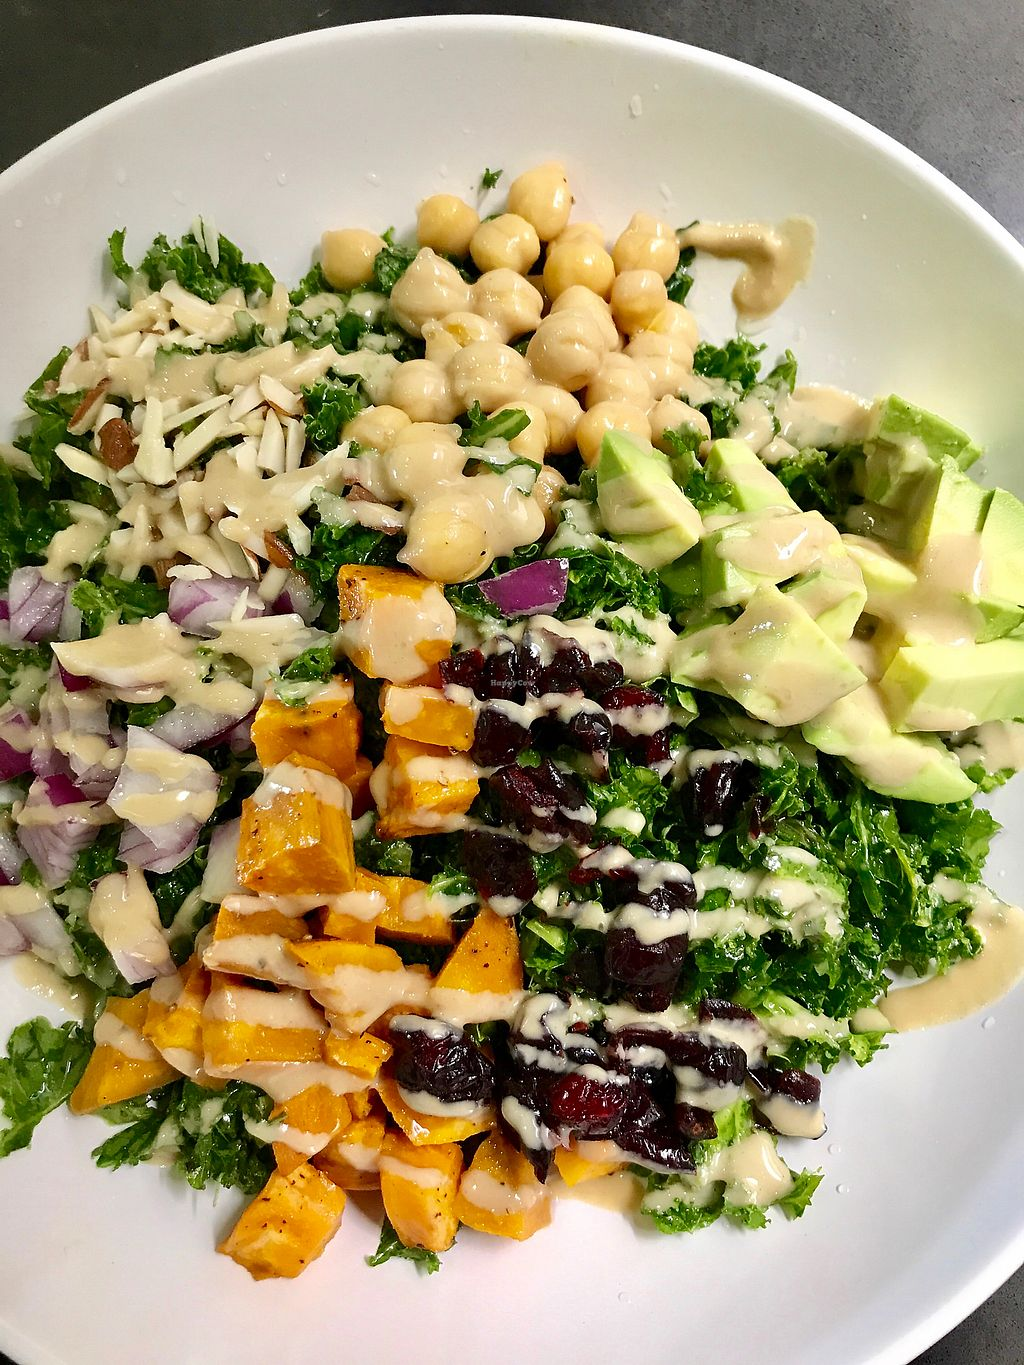 """Photo of Perk Coffee House   by <a href=""""/members/profile/MeganWoodard"""">MeganWoodard</a> <br/>Kale Power Bowl  <br/> August 9, 2017  - <a href='/contact/abuse/image/98196/290749'>Report</a>"""